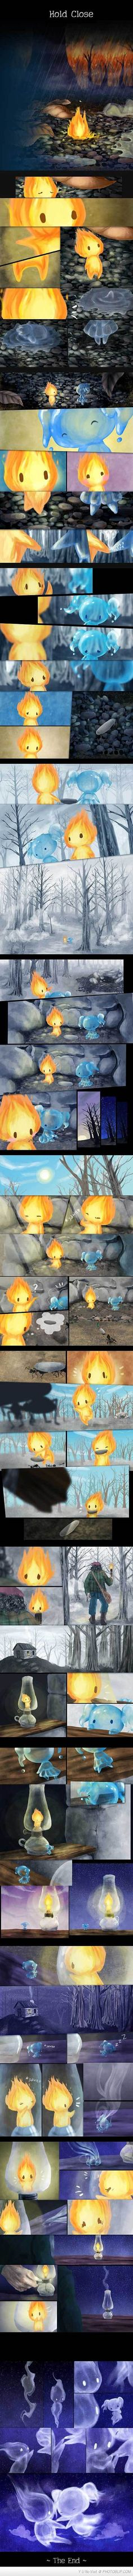 Fire and Water, such a cute story